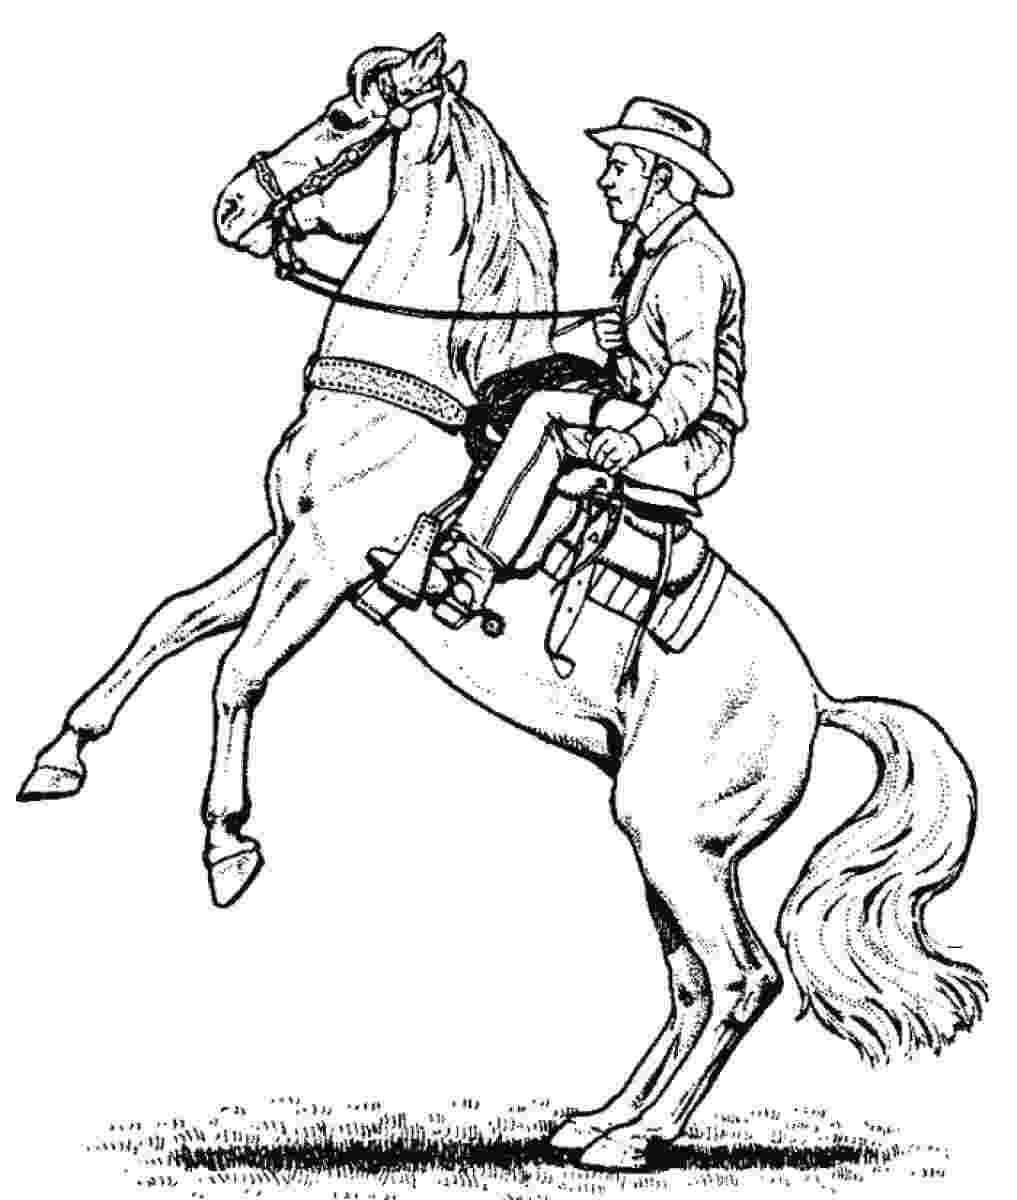 cowboy coloring pages cowboy coloring sheets cowboy coloring party ideas pages cowboy coloring